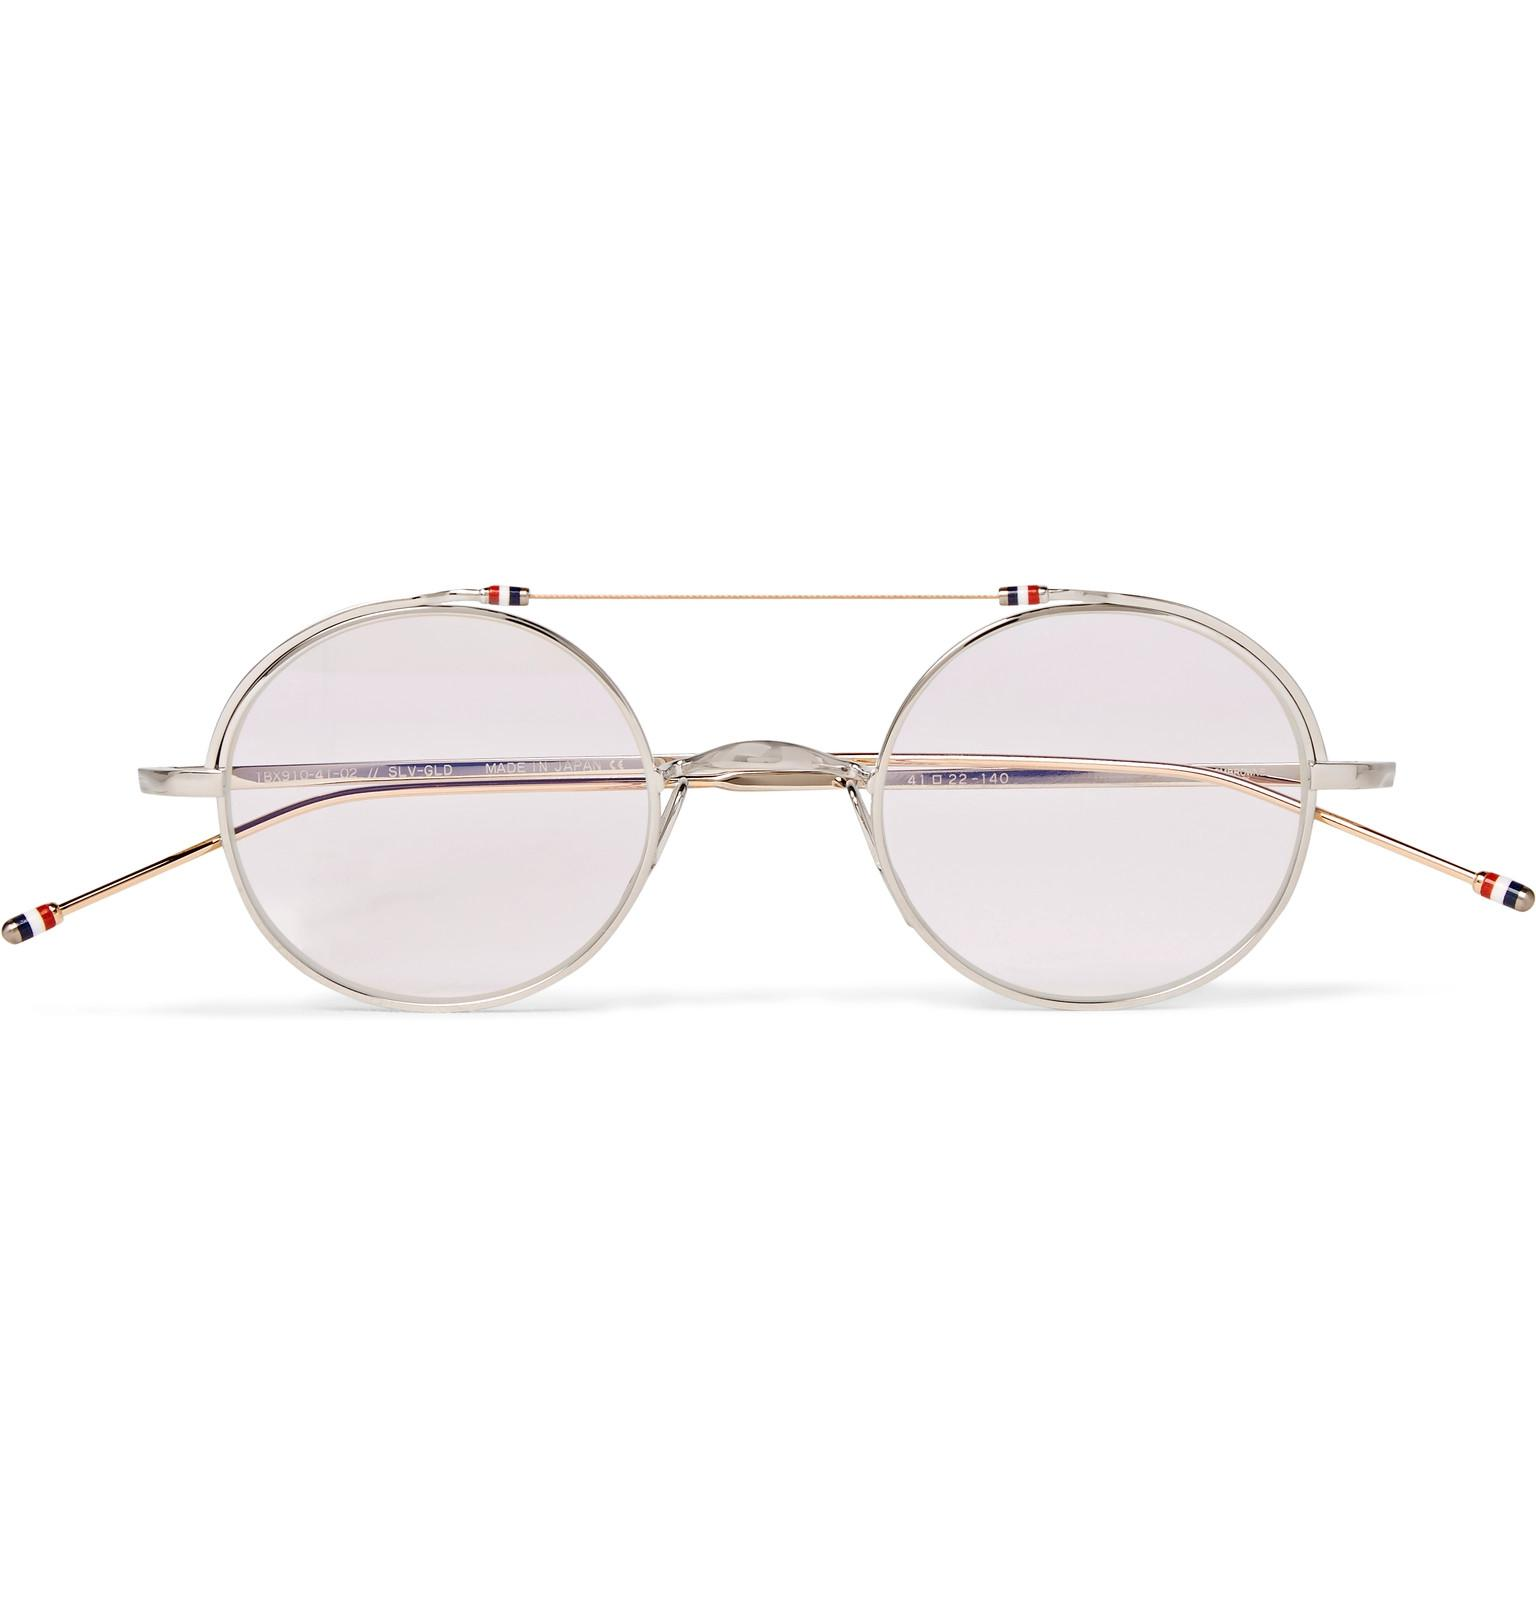 6e6e1d52a9f1 Thom Browne. Men s Metallic Round-frame Gold And Silver-tone Optical Glasses